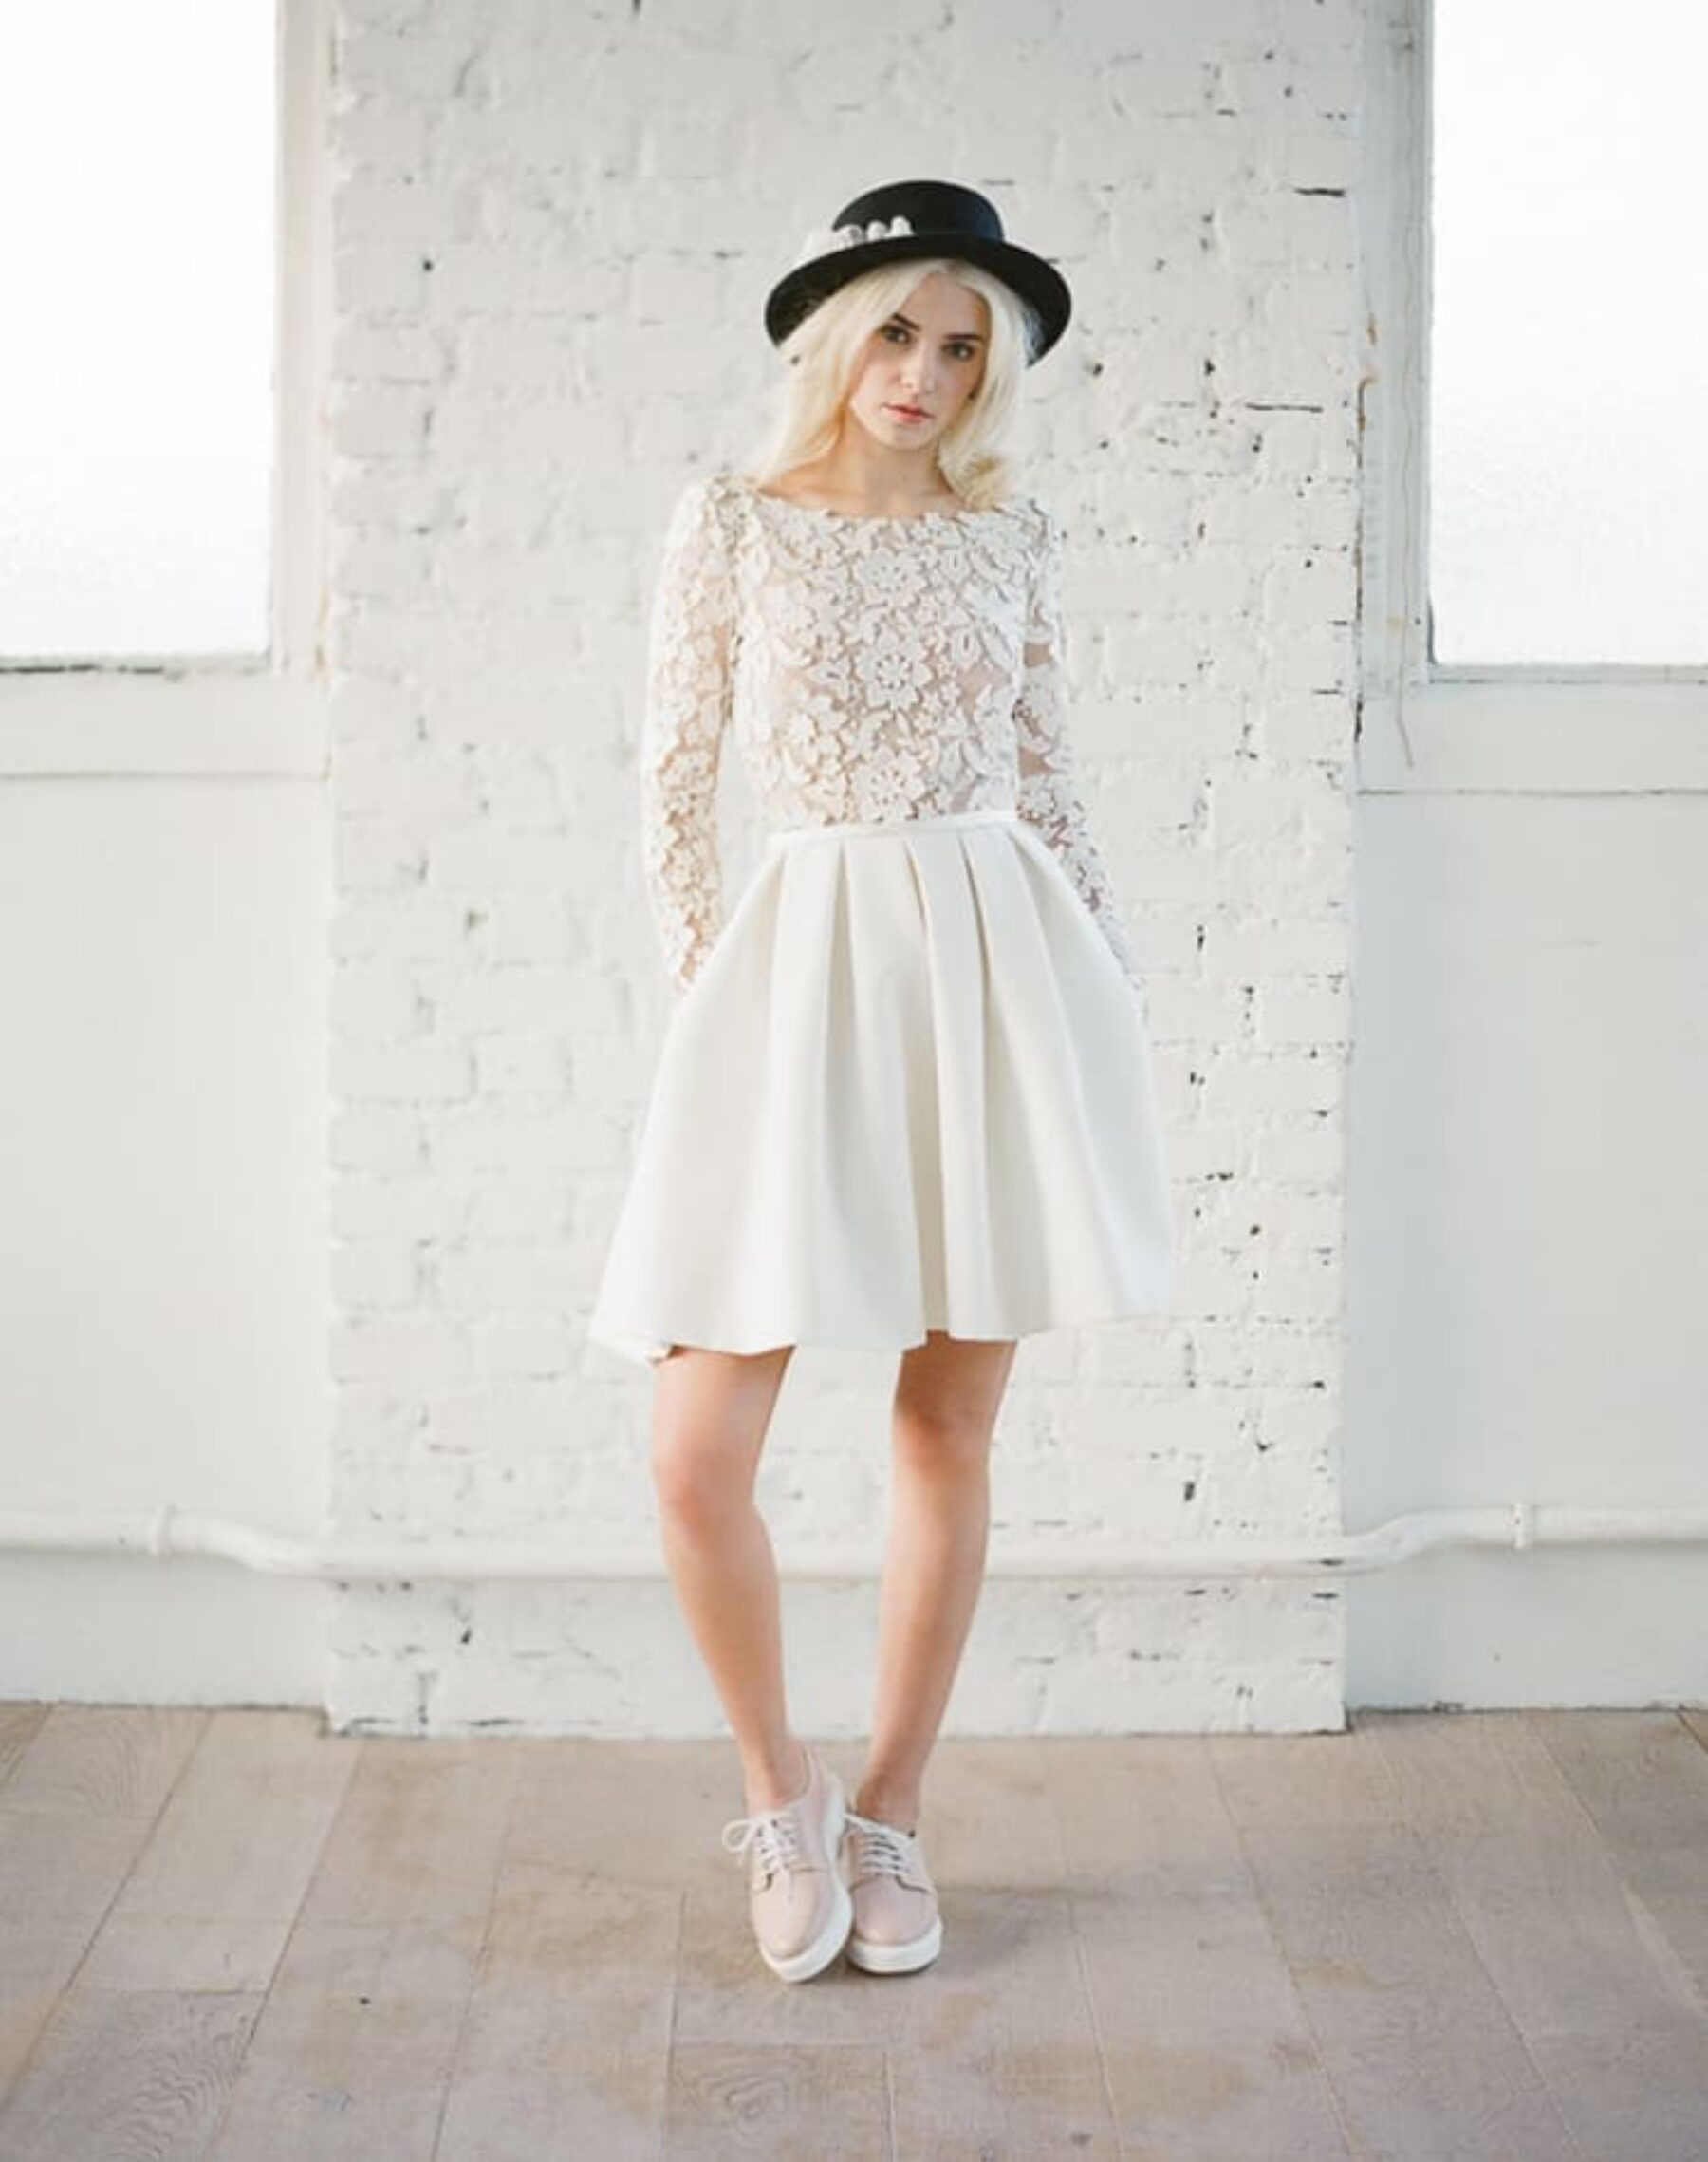 Clover dress Rime Arodaky